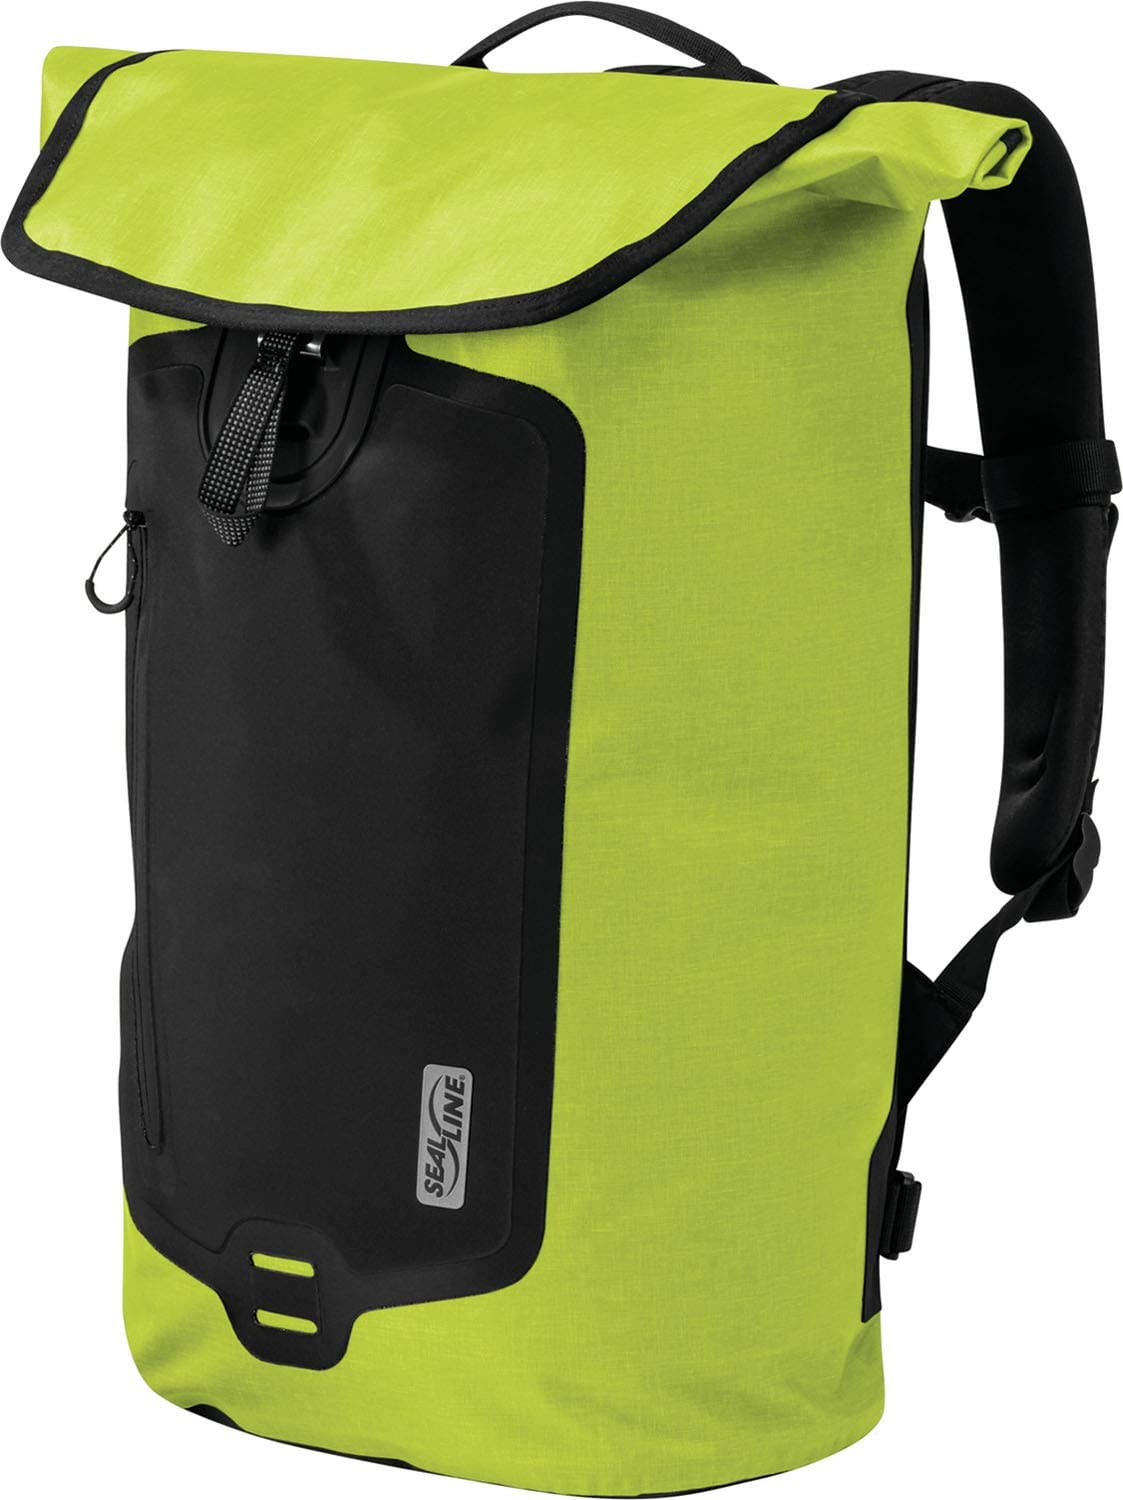 SealLine Urban 26-Liter Waterproof Laptop Dry Daypack